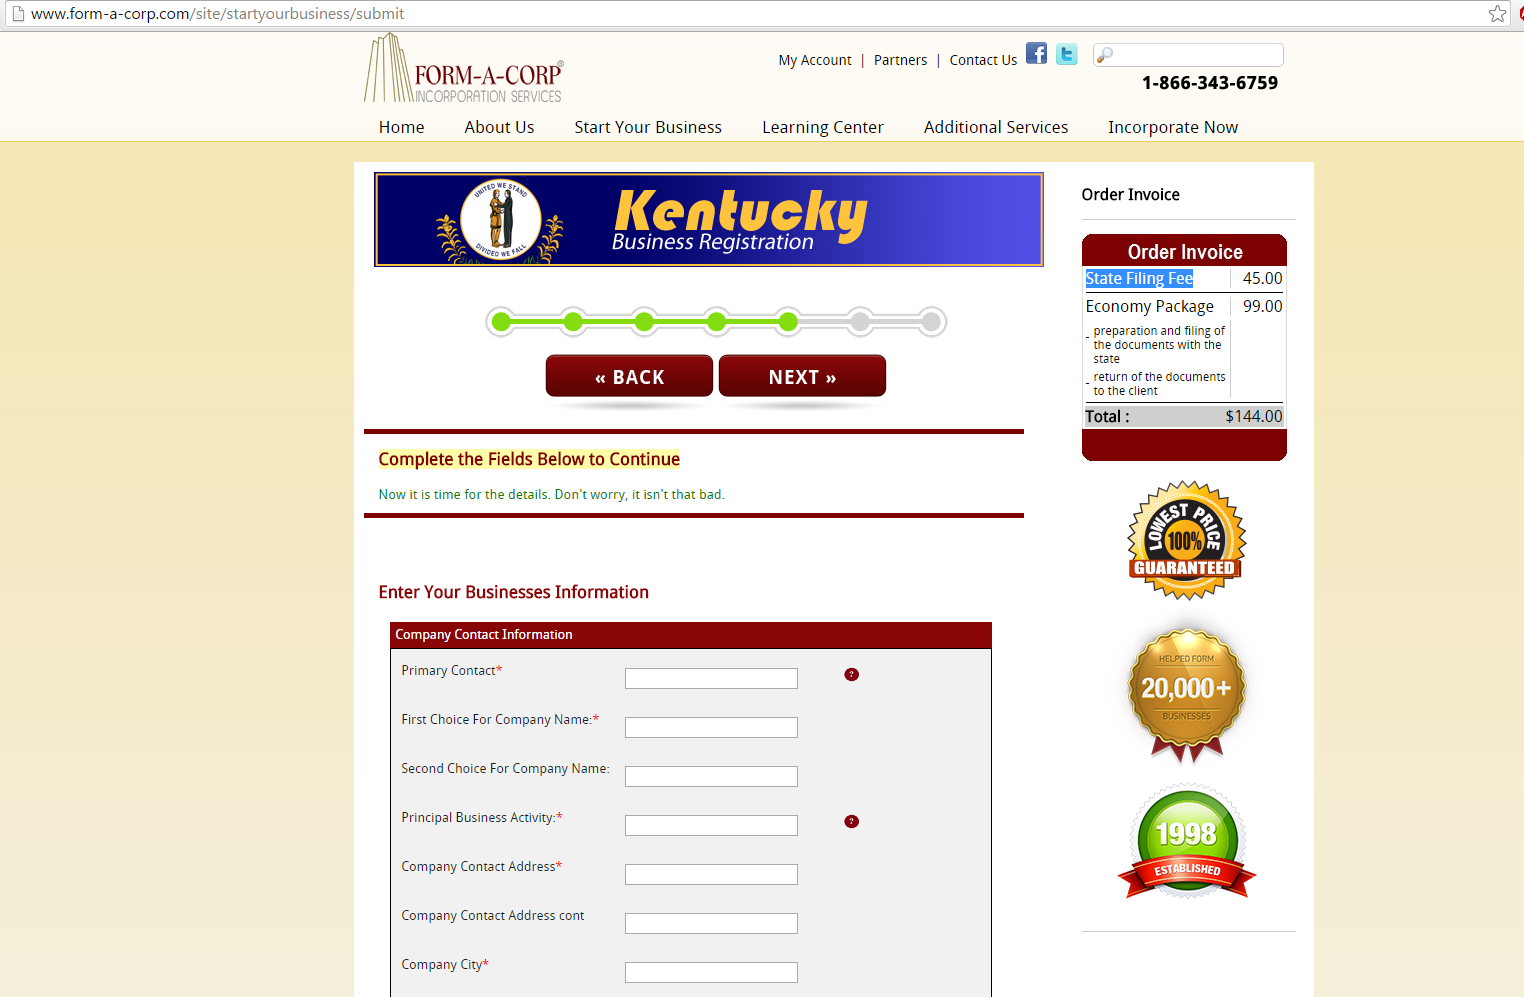 Form-a-corp-com KY State Fee 45 Dollars (a $5 increase)